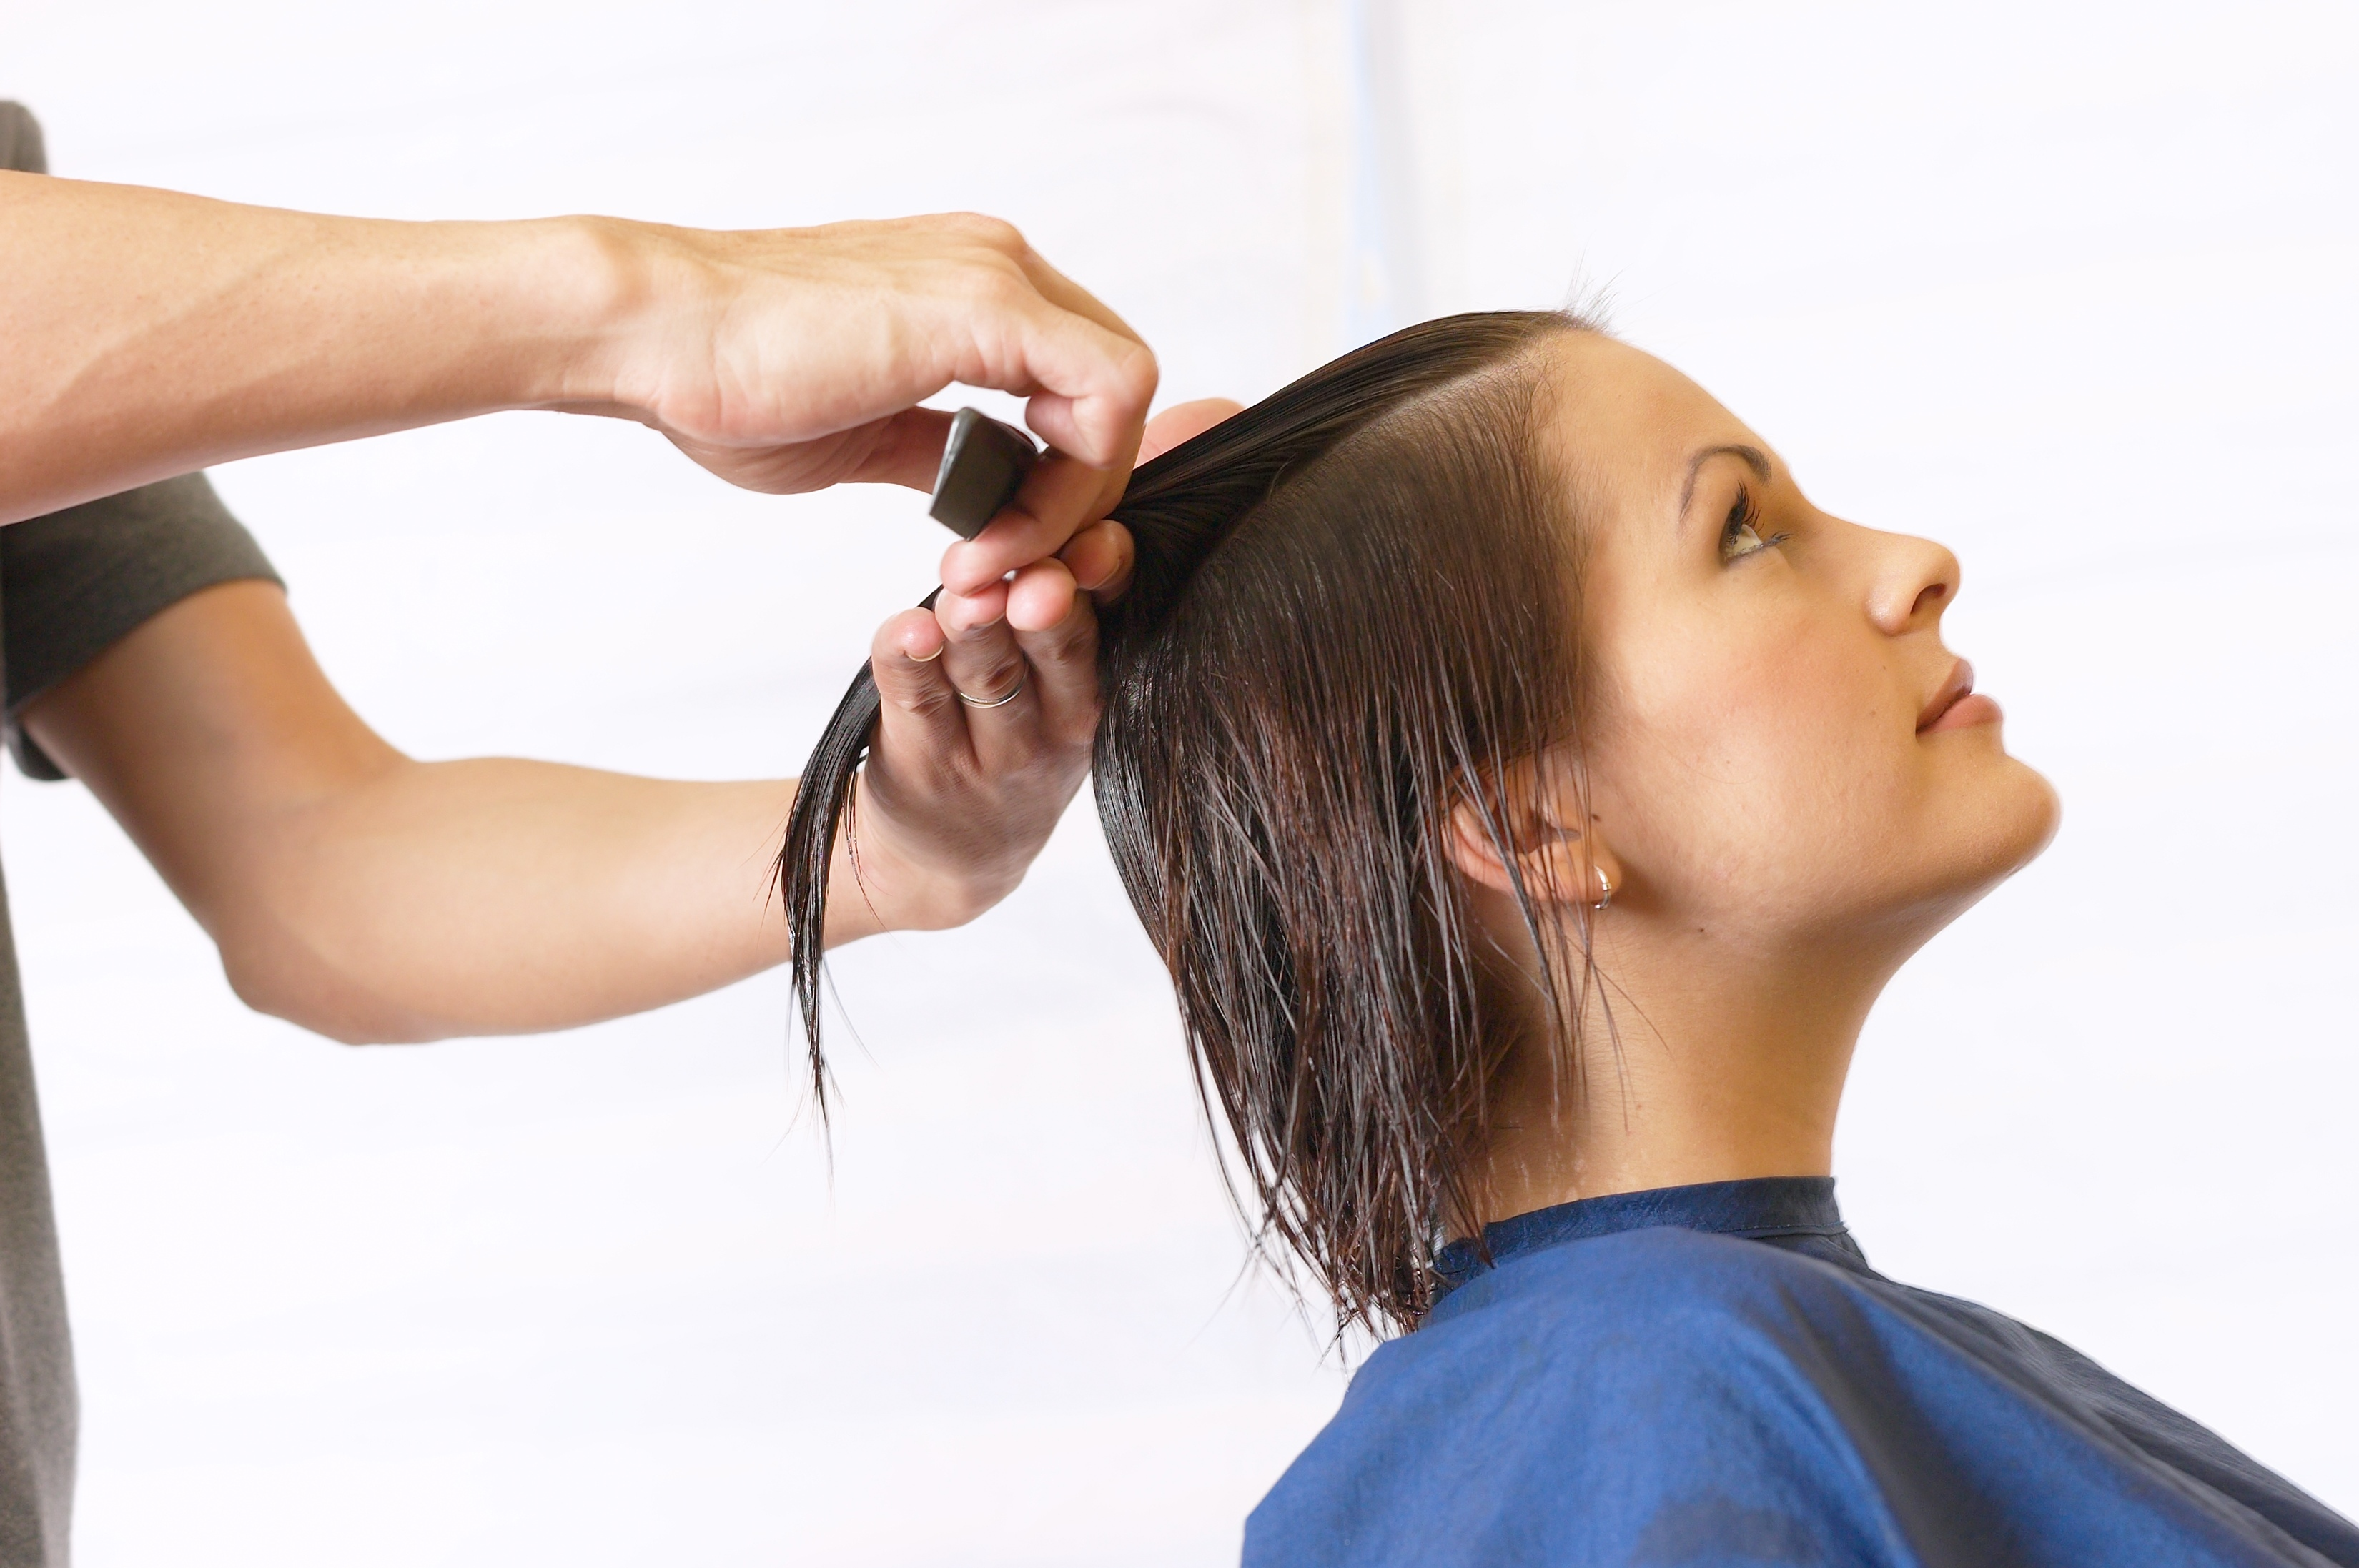 There is no evidence that the ketogenic diet can change hair growth.